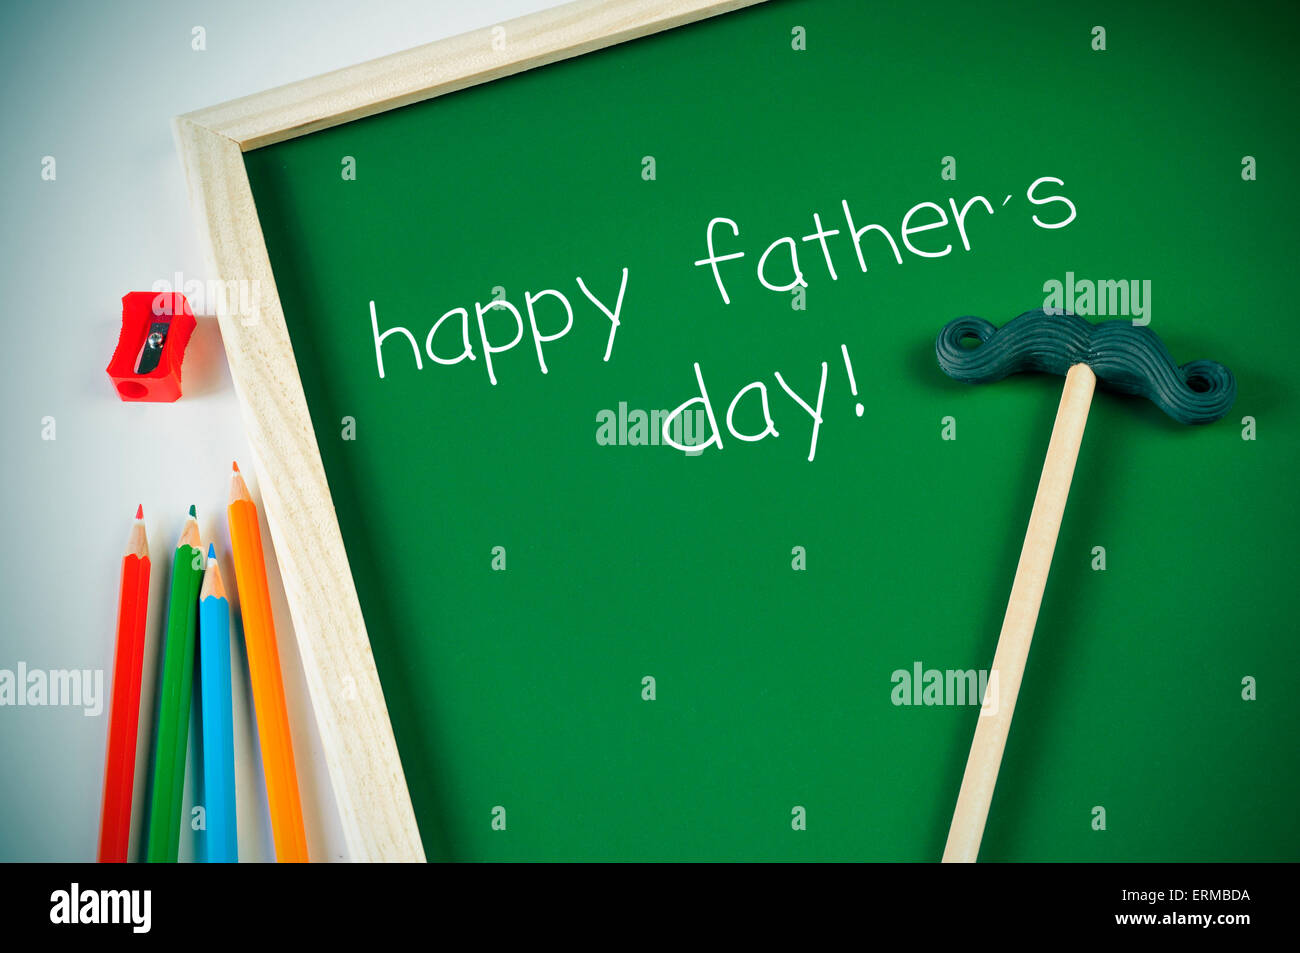 some colored pencils of different colors and a framed green chalkboard with the text happy fathers day written in - Stock Image